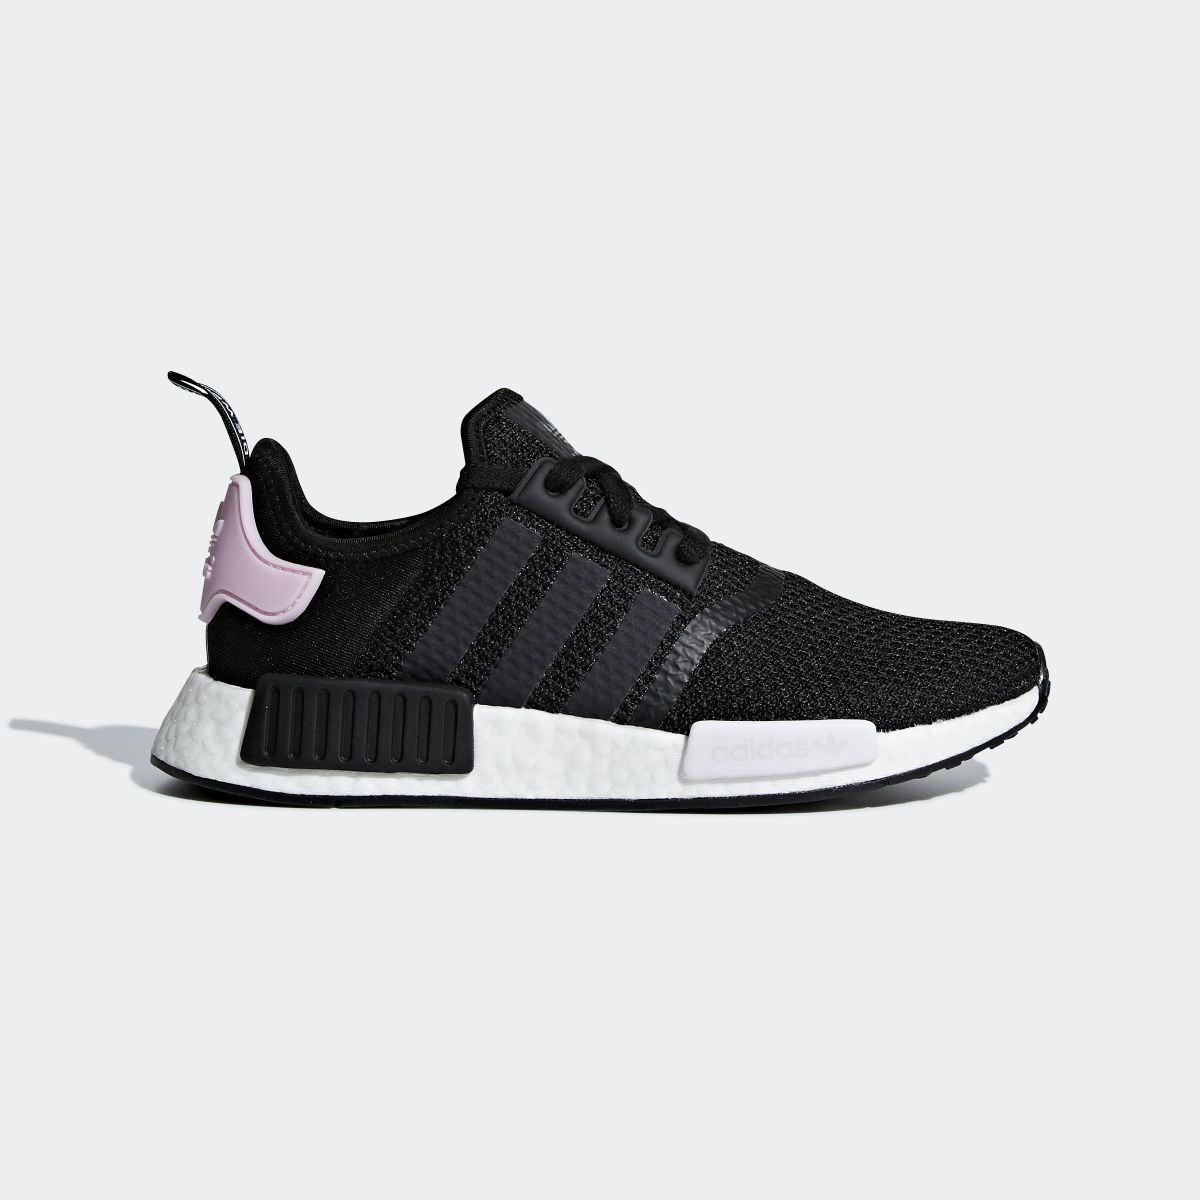 Adidas adidas NMD R1 W Lady's originals shoes sneakers B37649